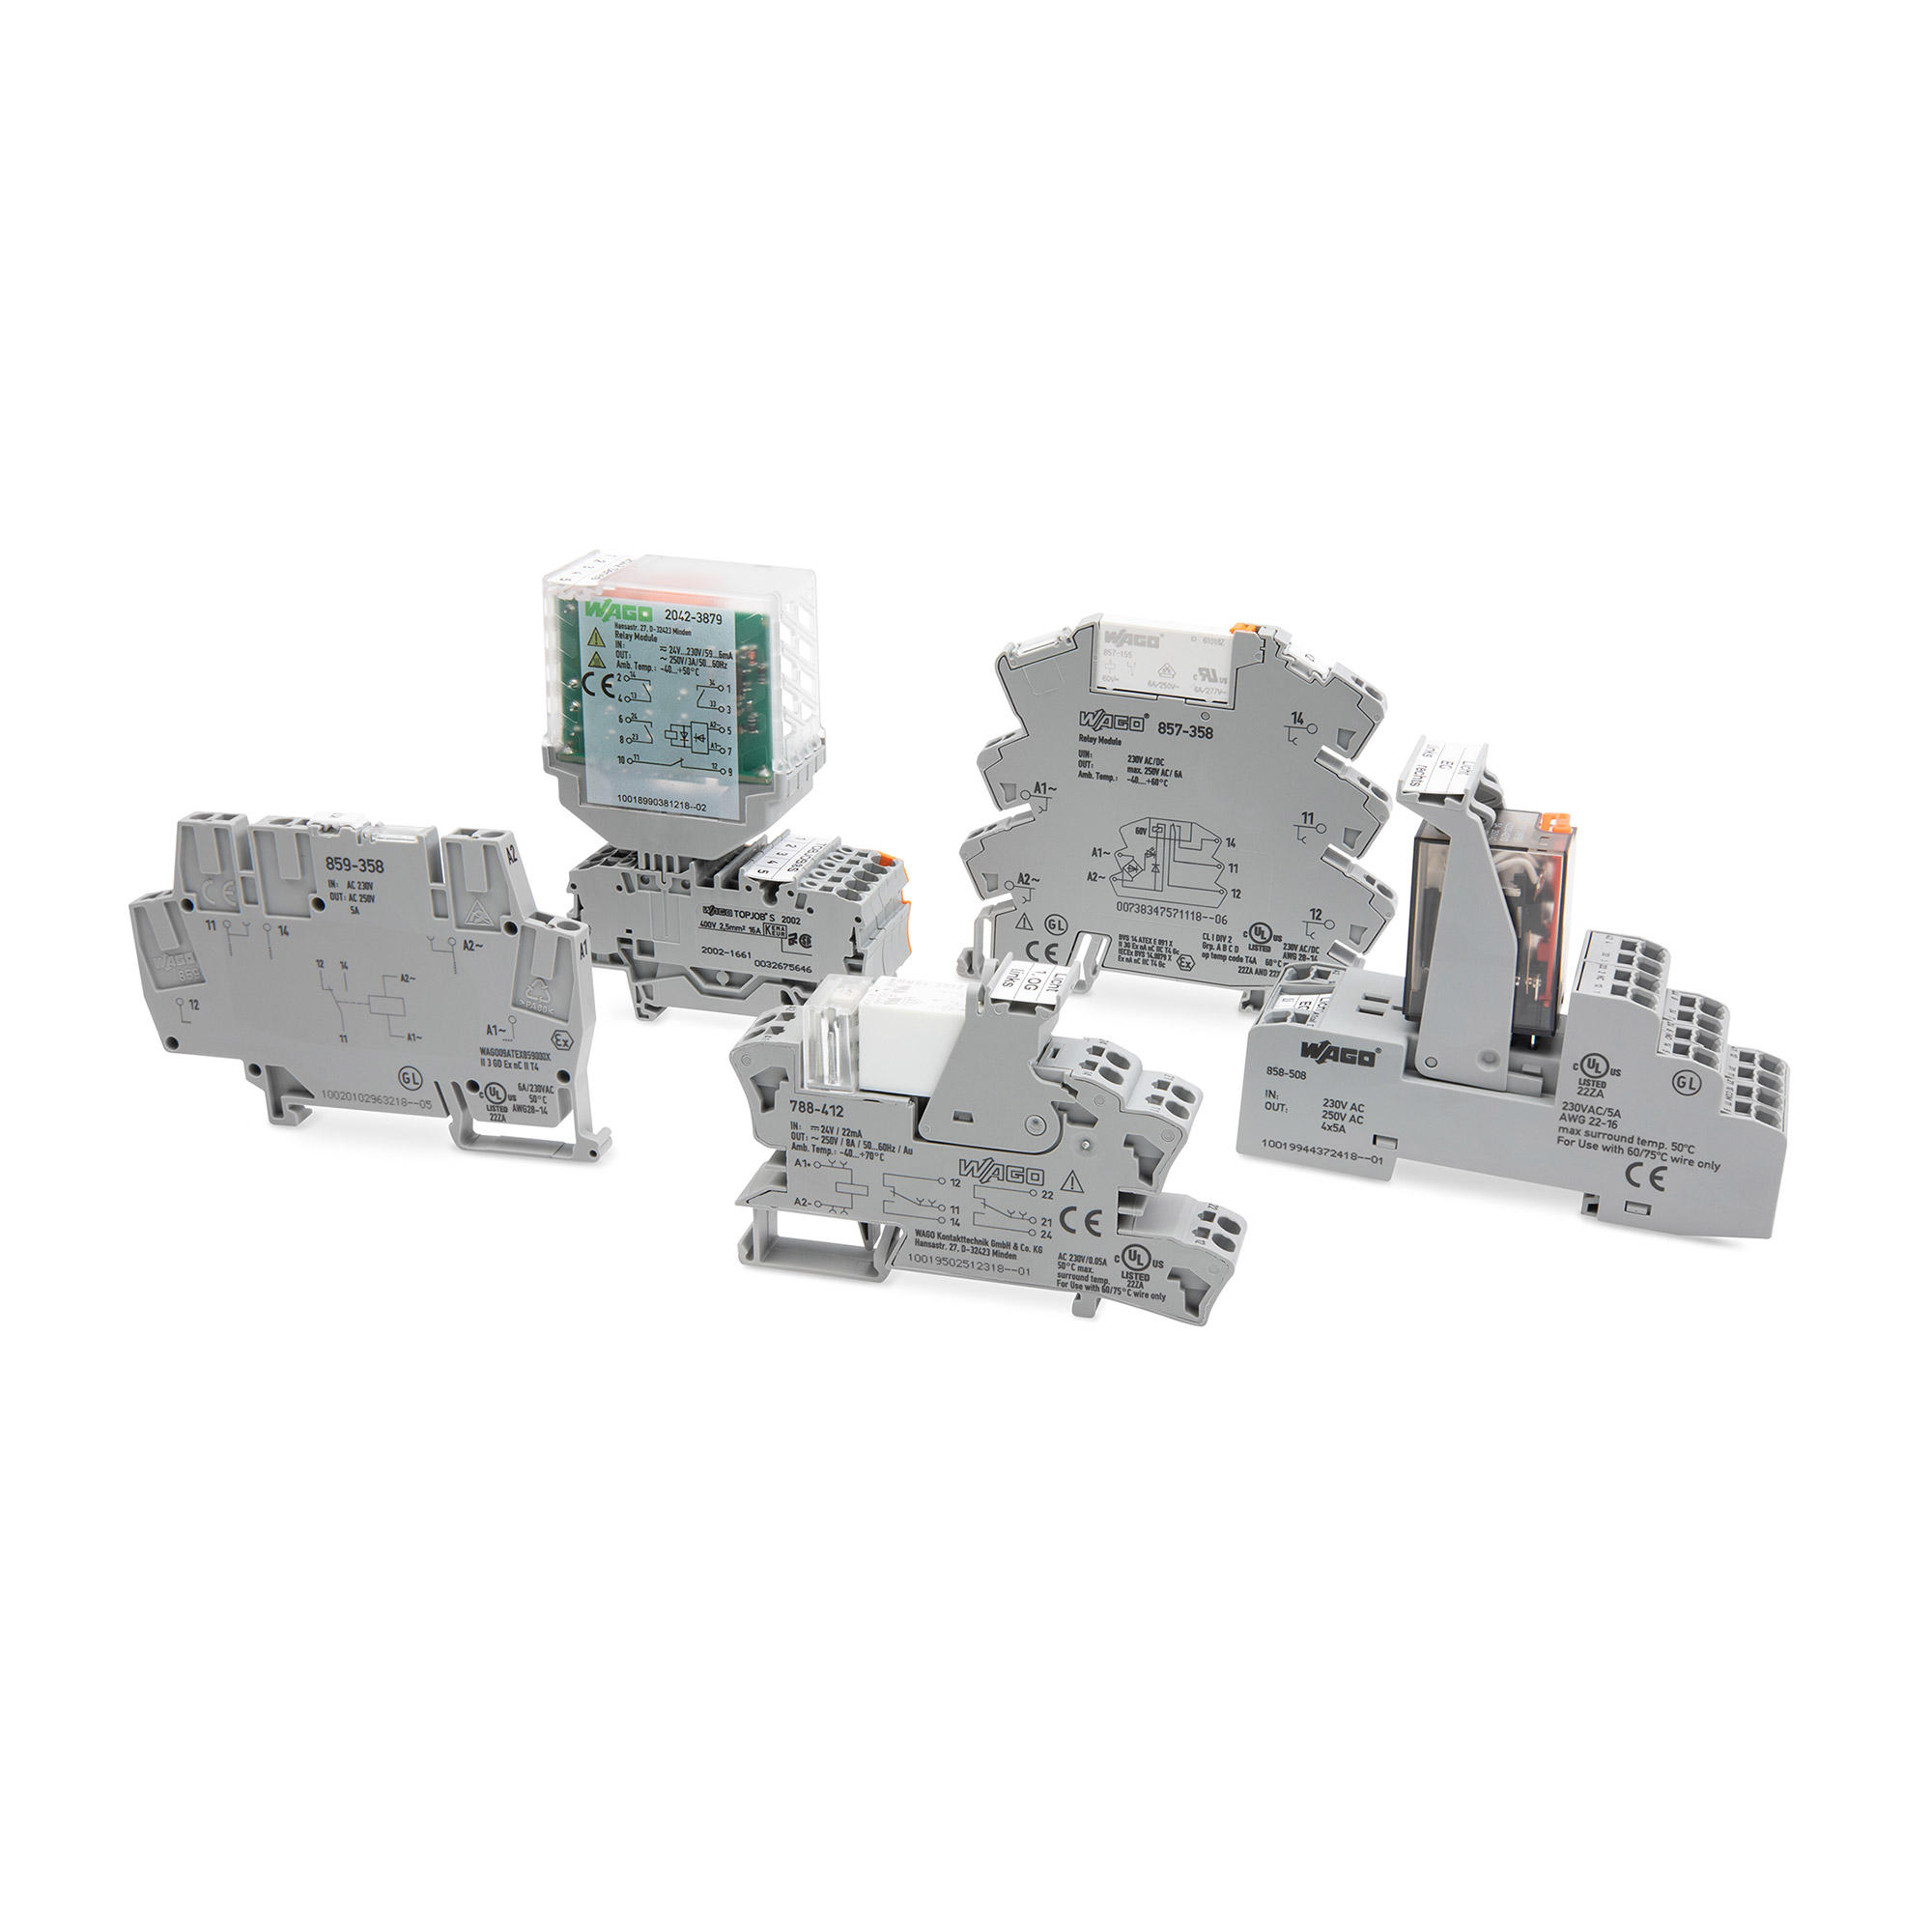 MM-3138  new header relays and optocouplers_2000x2000.jpg